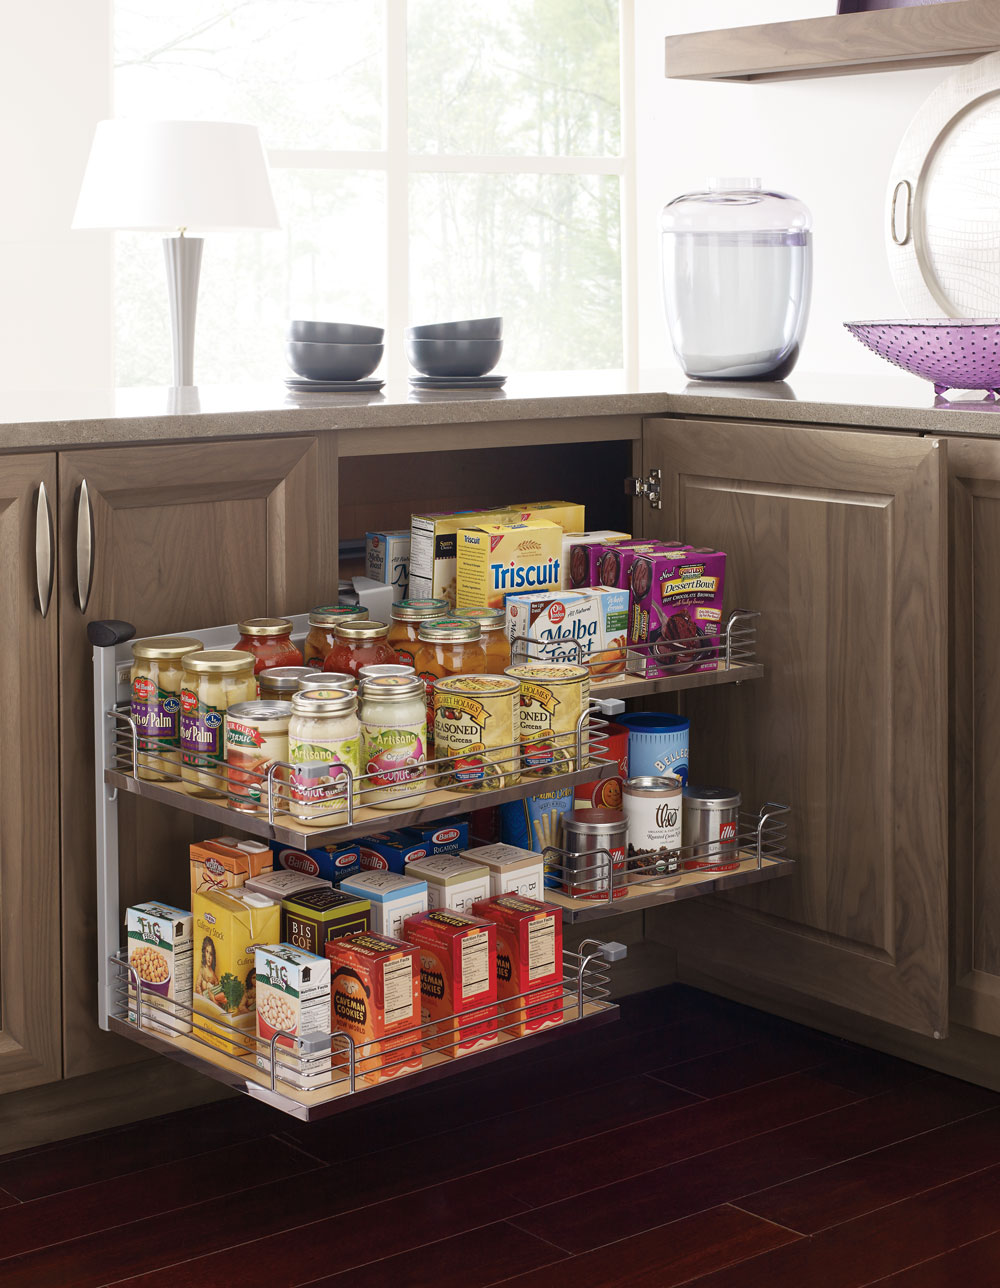 Innovative Storage Solutions Are Important When It Comes To Your Kitchen  Cabinets. Having Enough Storage Will Keep Your Countertops Open For  Workspace And ...